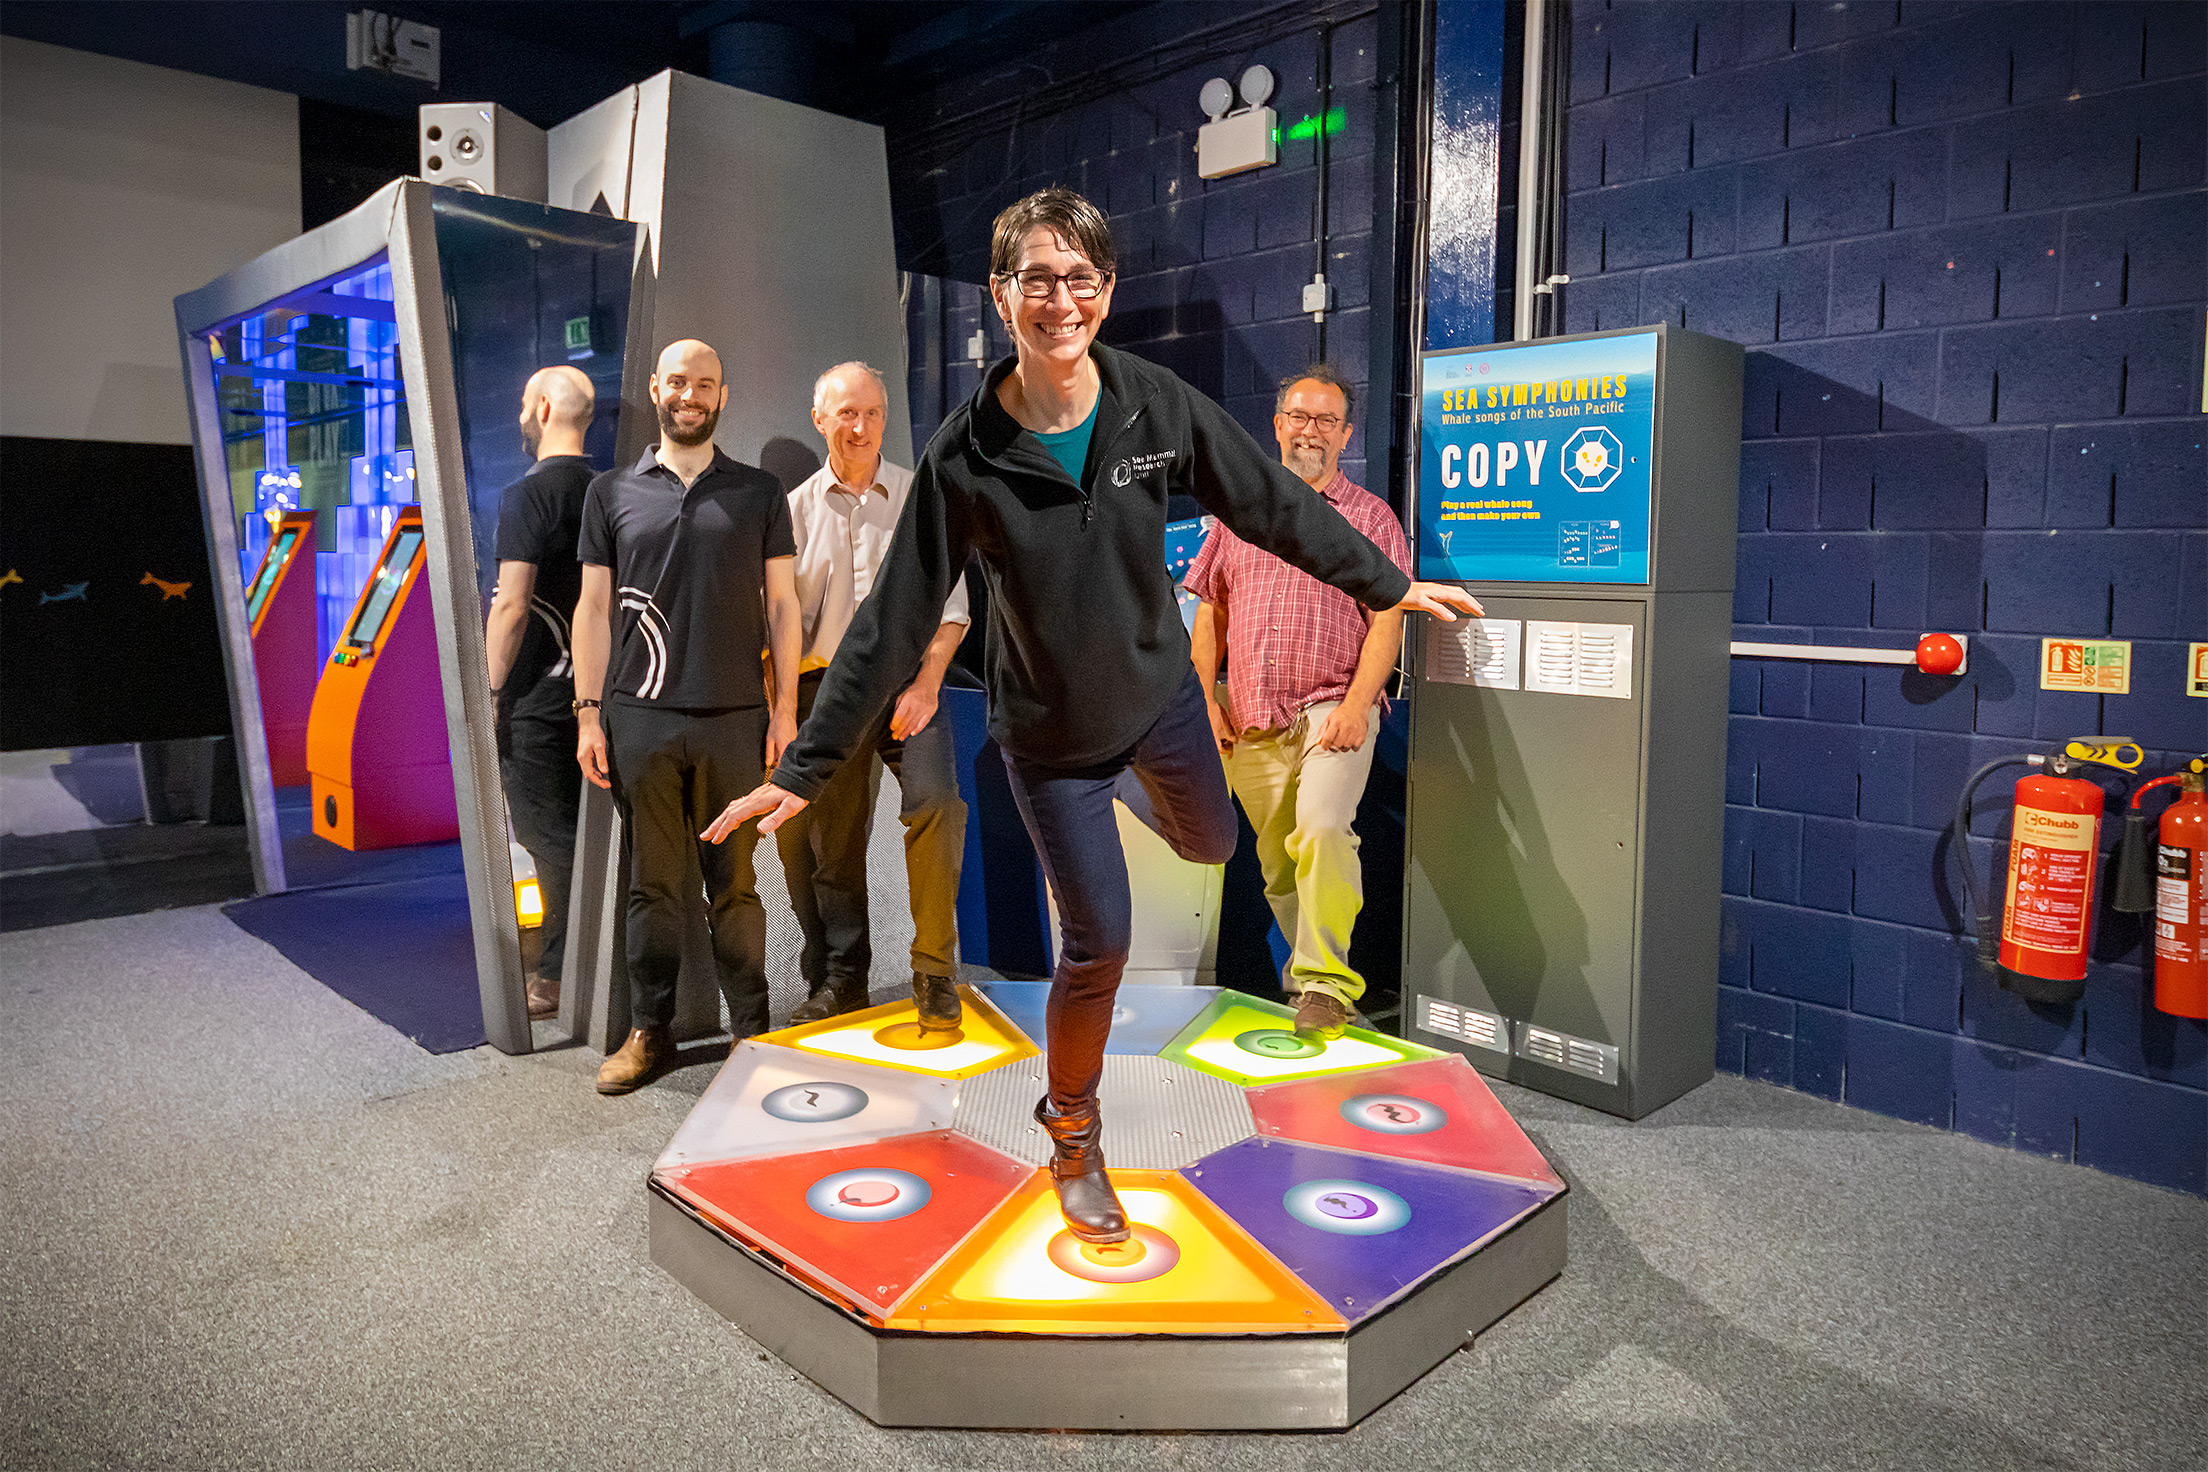 Dr Ellen Garland from St Andrews University tries out the exhibit. In the back row are Matt Williamson from Dundee Science Centre and the university's Steve Smart and Dr Luke Rendell.